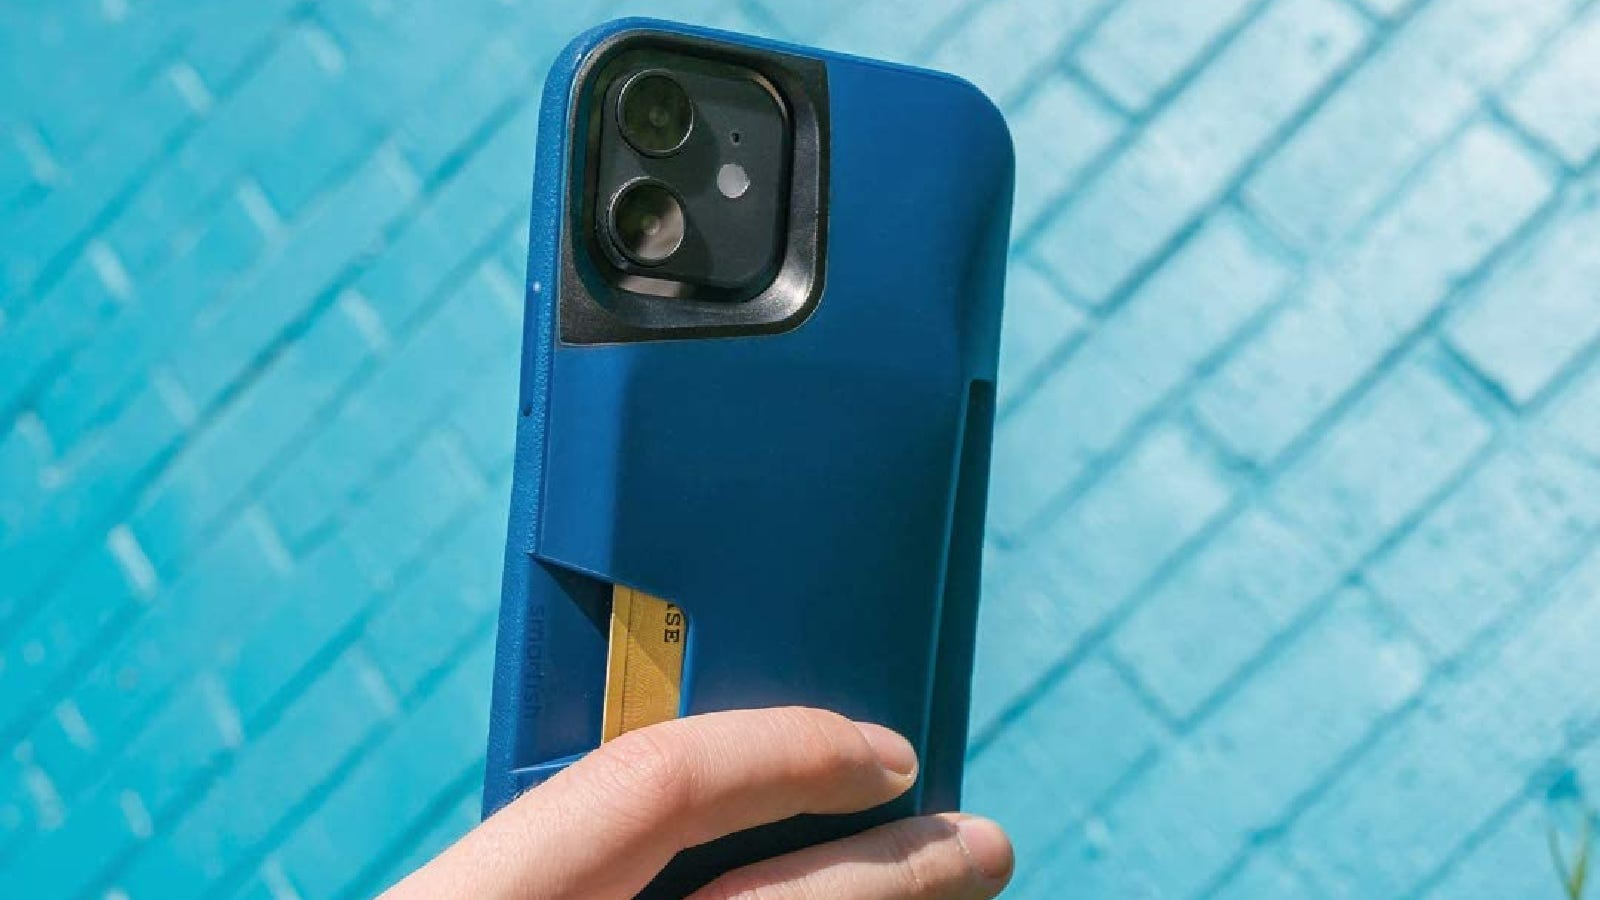 A hand holds an iPhone that's in a blue wallet case.